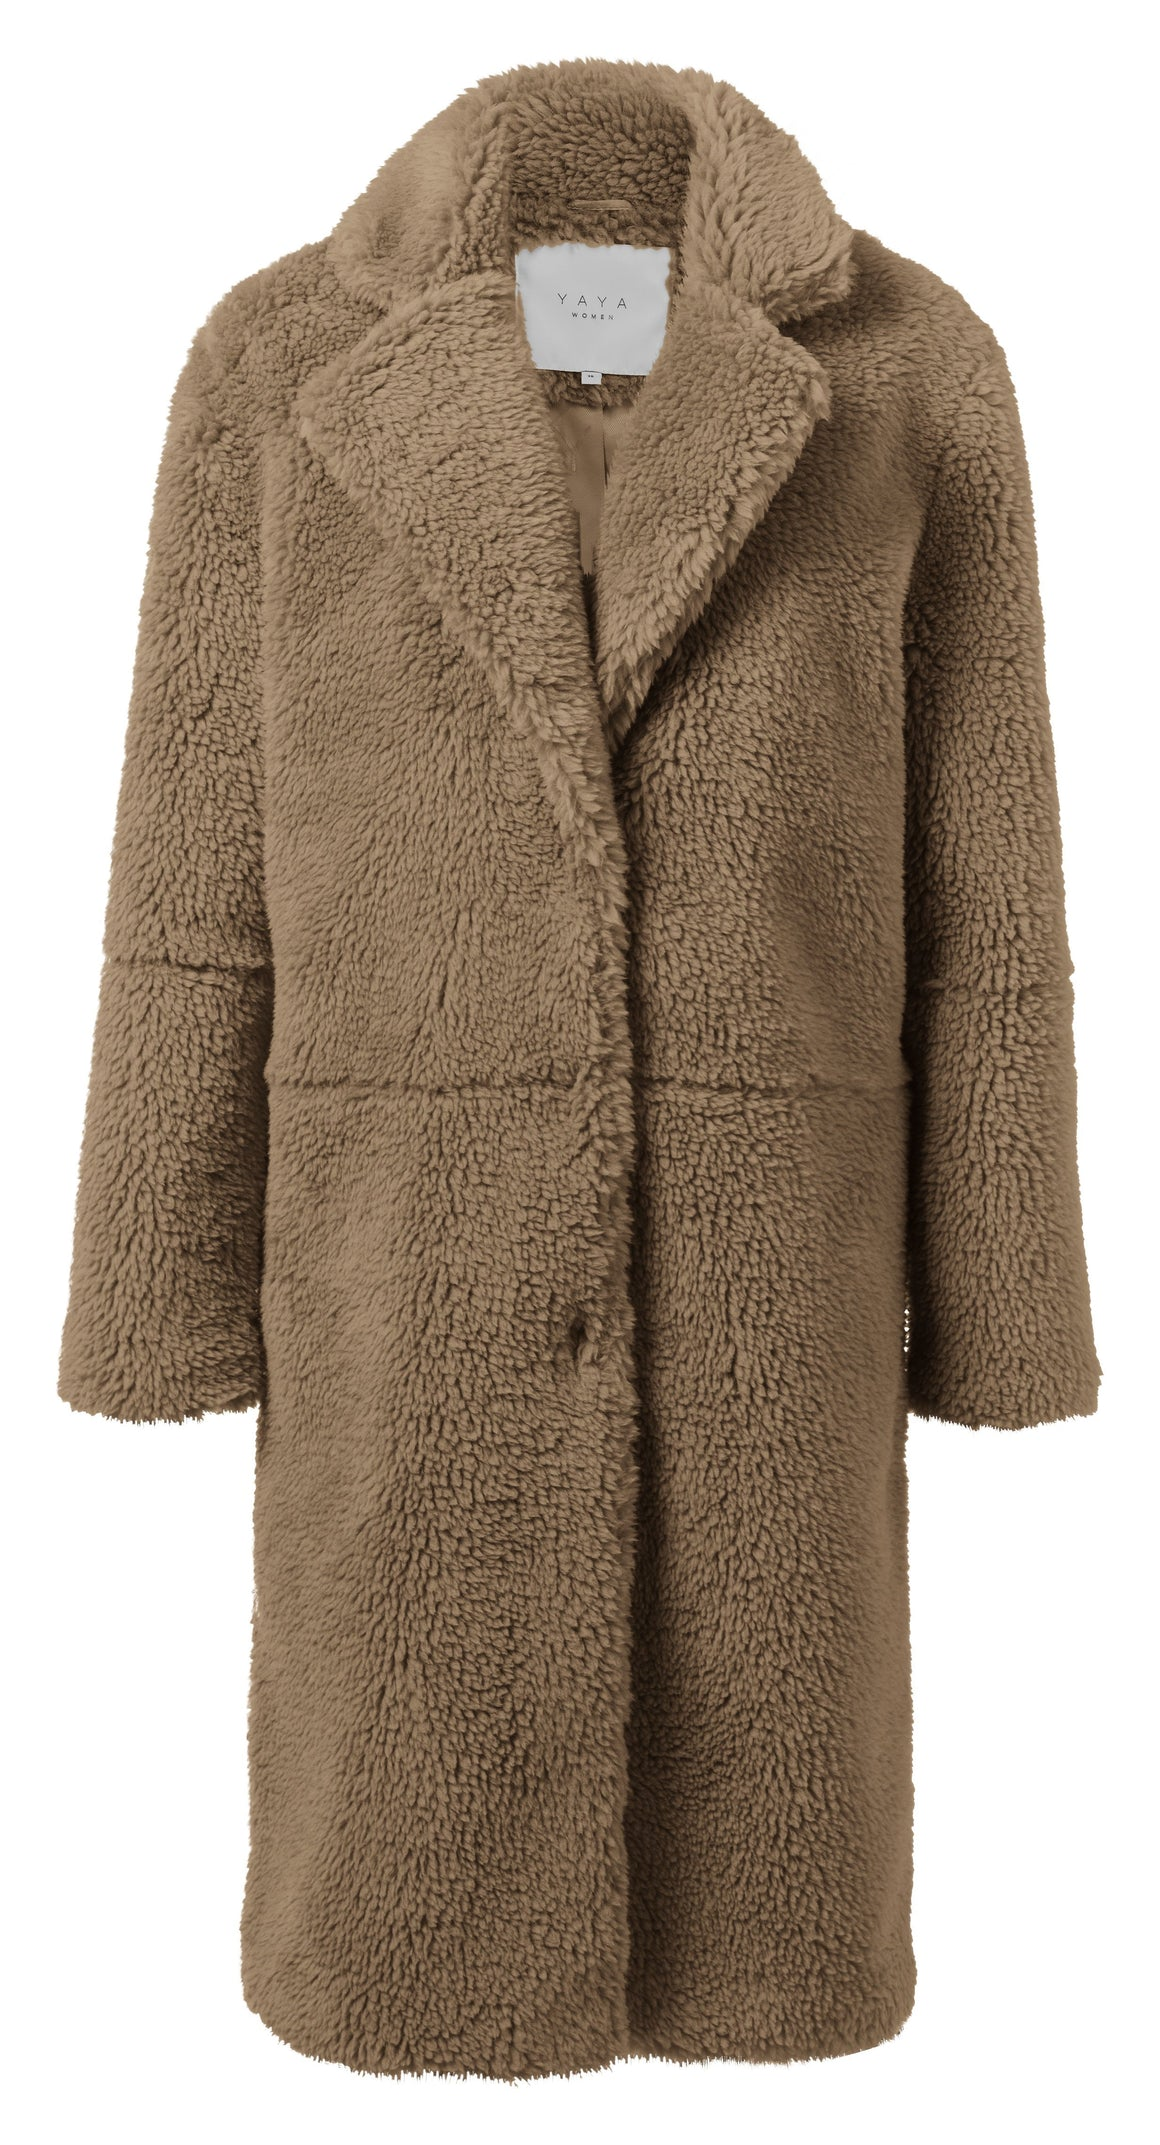 Brown YaYa Teddy Coat Coat BouChic | Homeware, Fashion, Gifts, Accessories